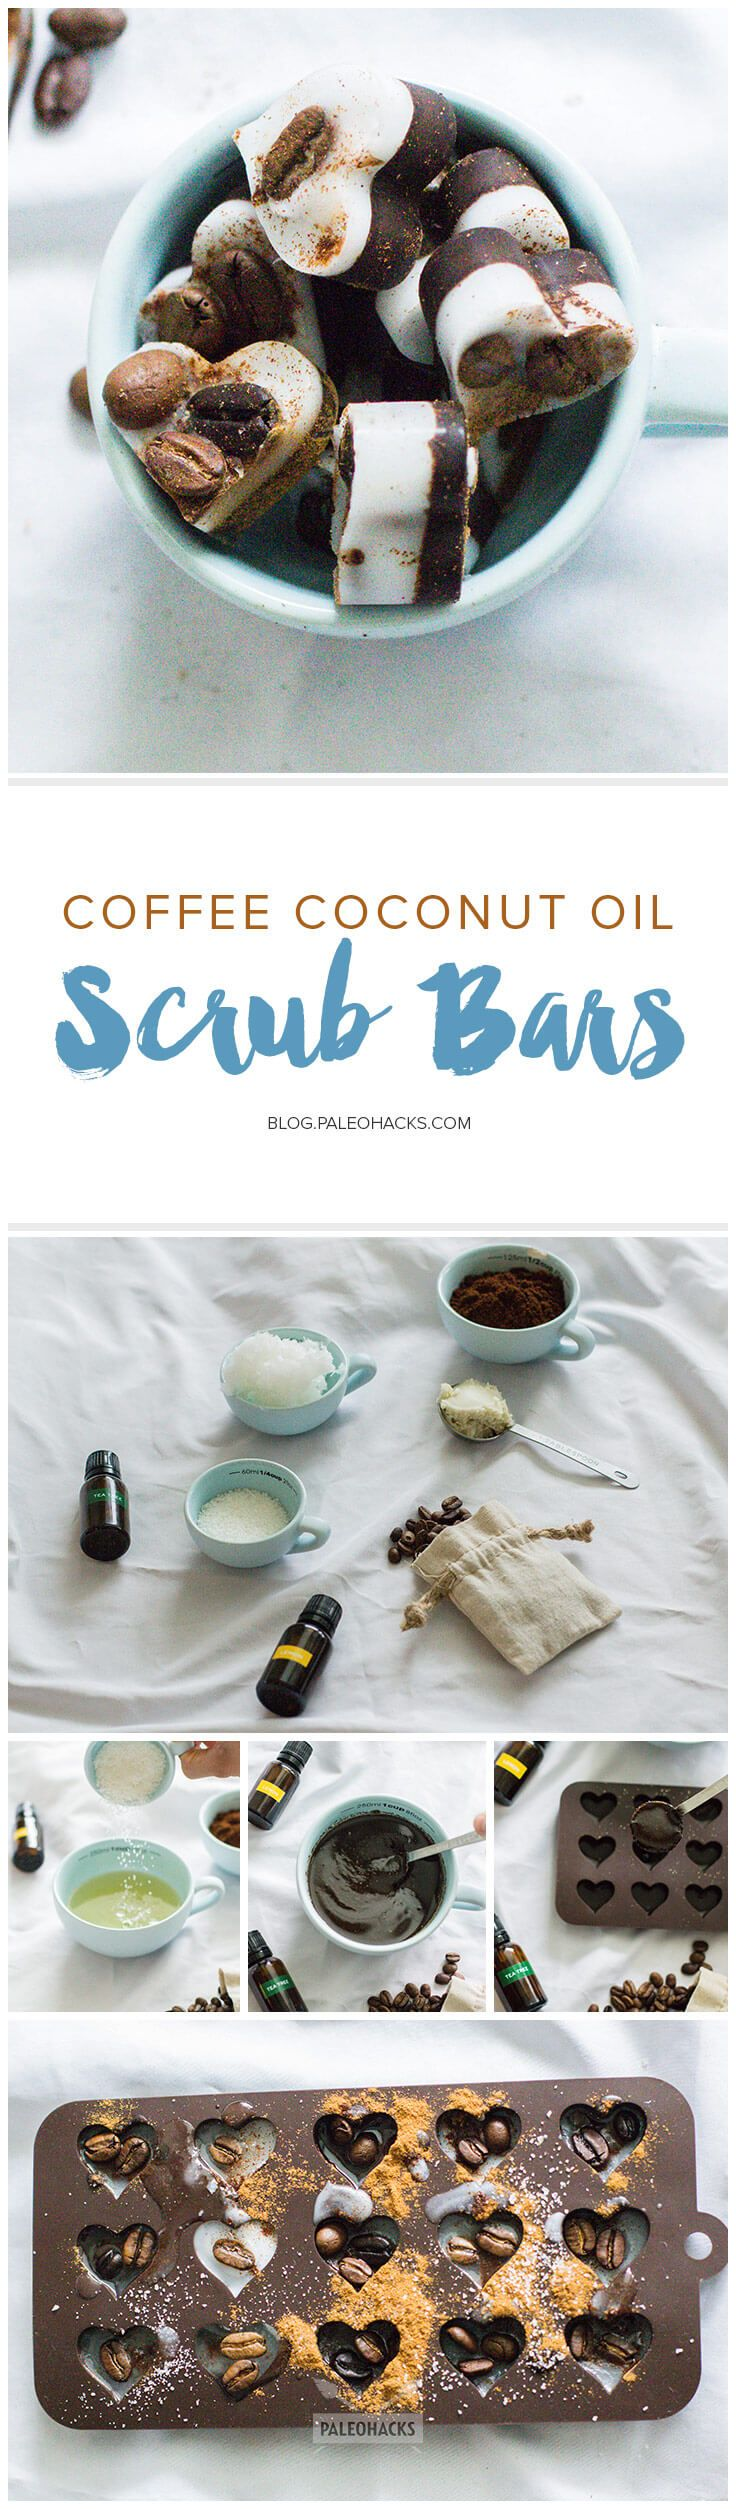 Gently exfoliate dull, tired skin with these mini scrub bars made from coffee and moisturizing coconut oil. Get the recipe here: http://paleo.co/CocoScrubBars